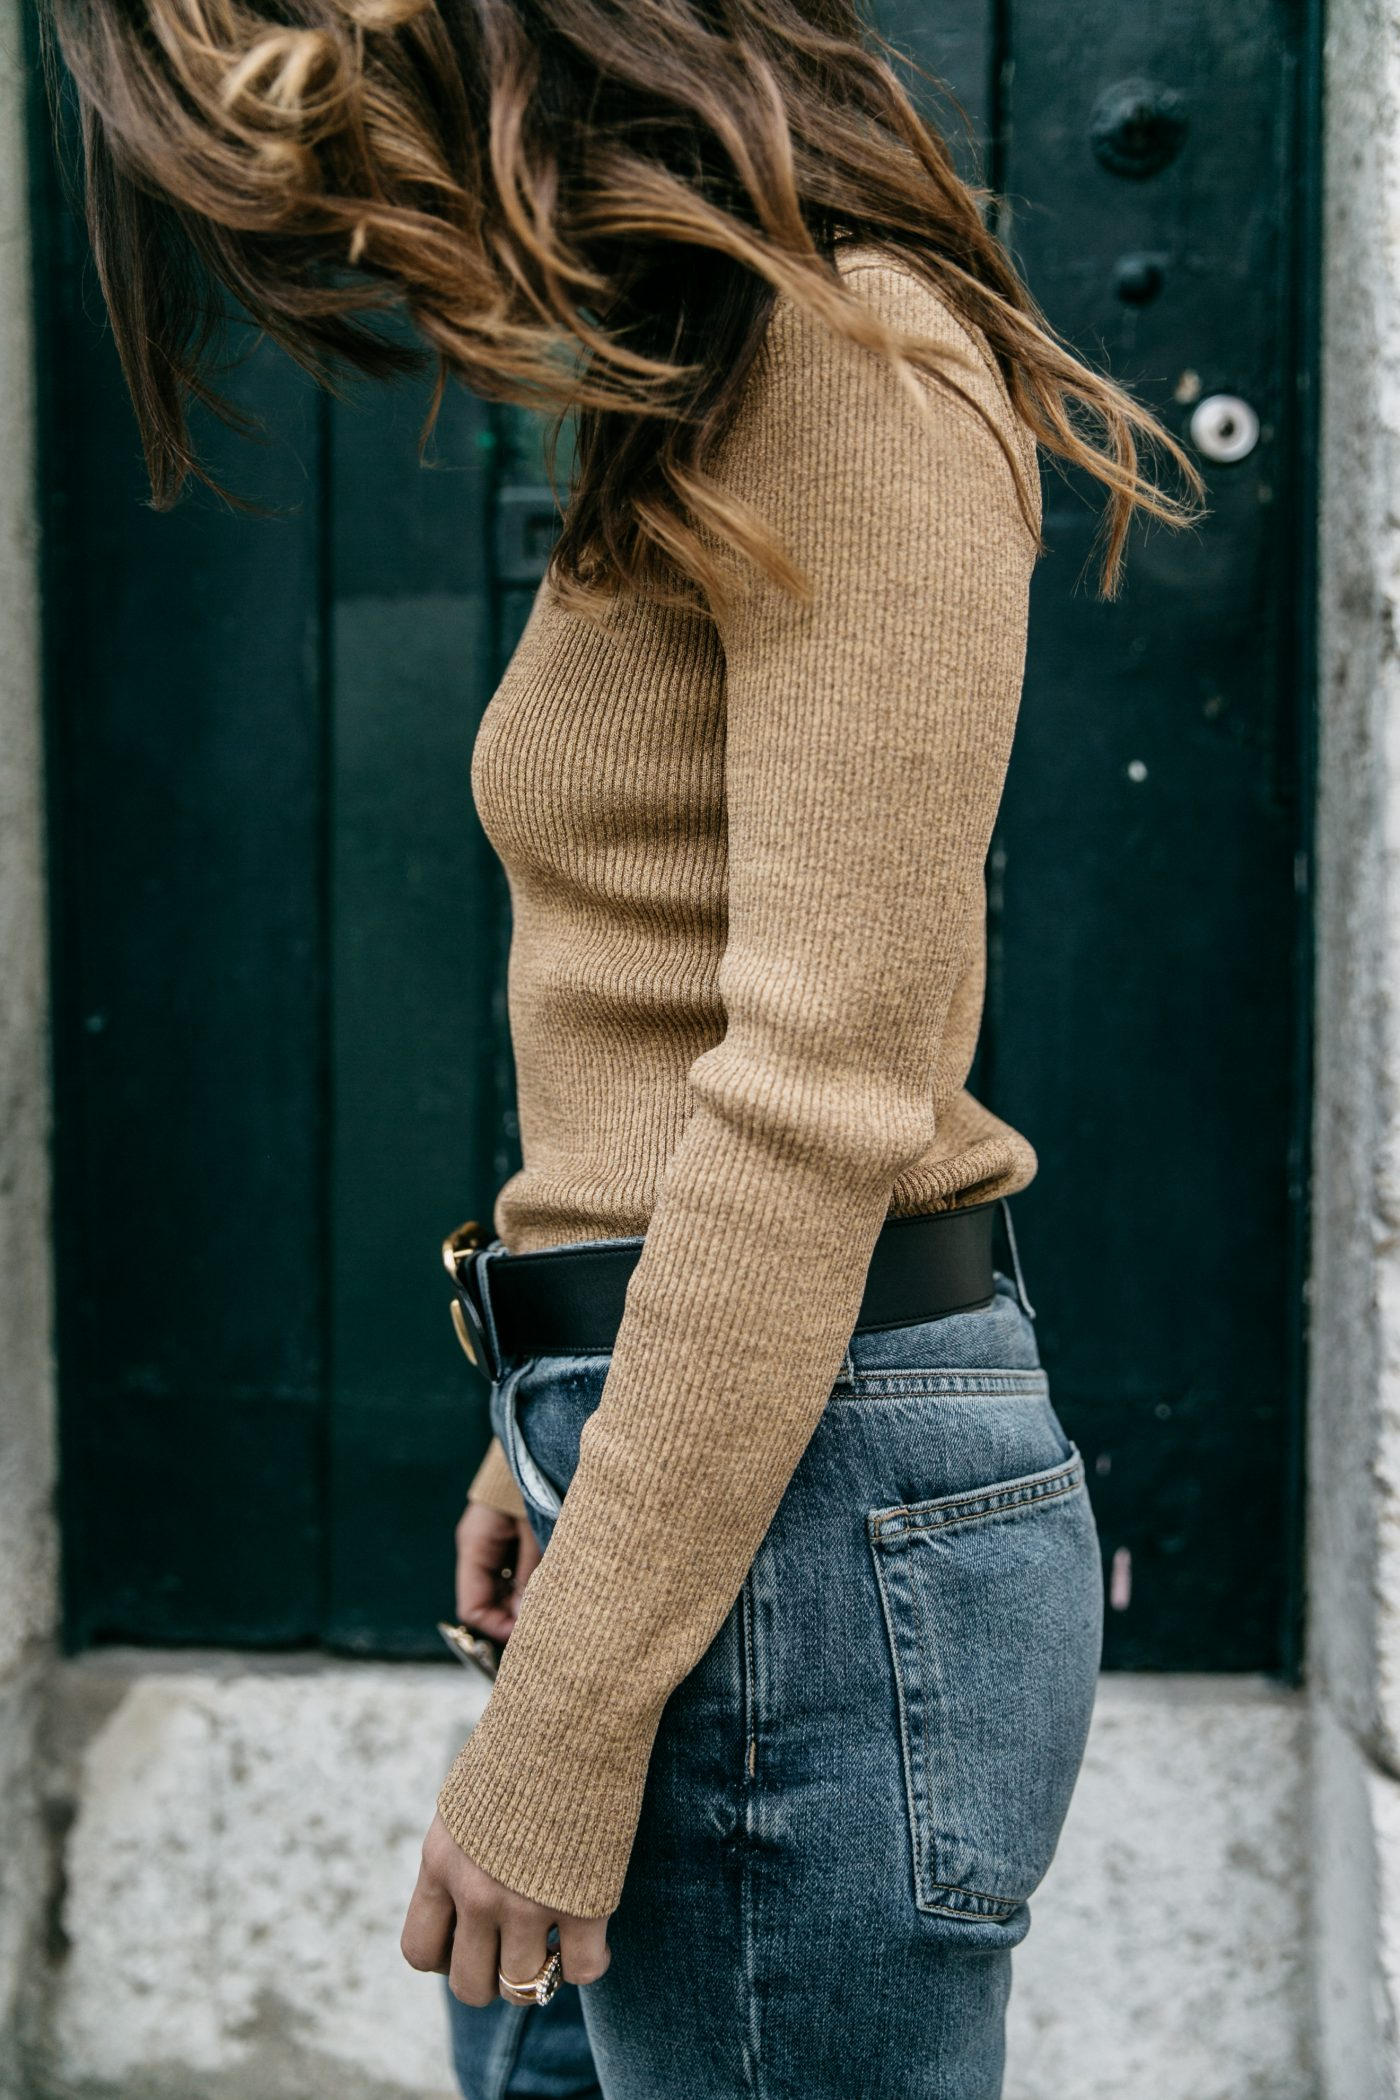 Metallic_Sweater-Cameo_The_Label-Melie-Lisboa-Denim-Topshop-Gucci_Belt-Saint_Laurent_Sneakers-Outfit-Street_Style